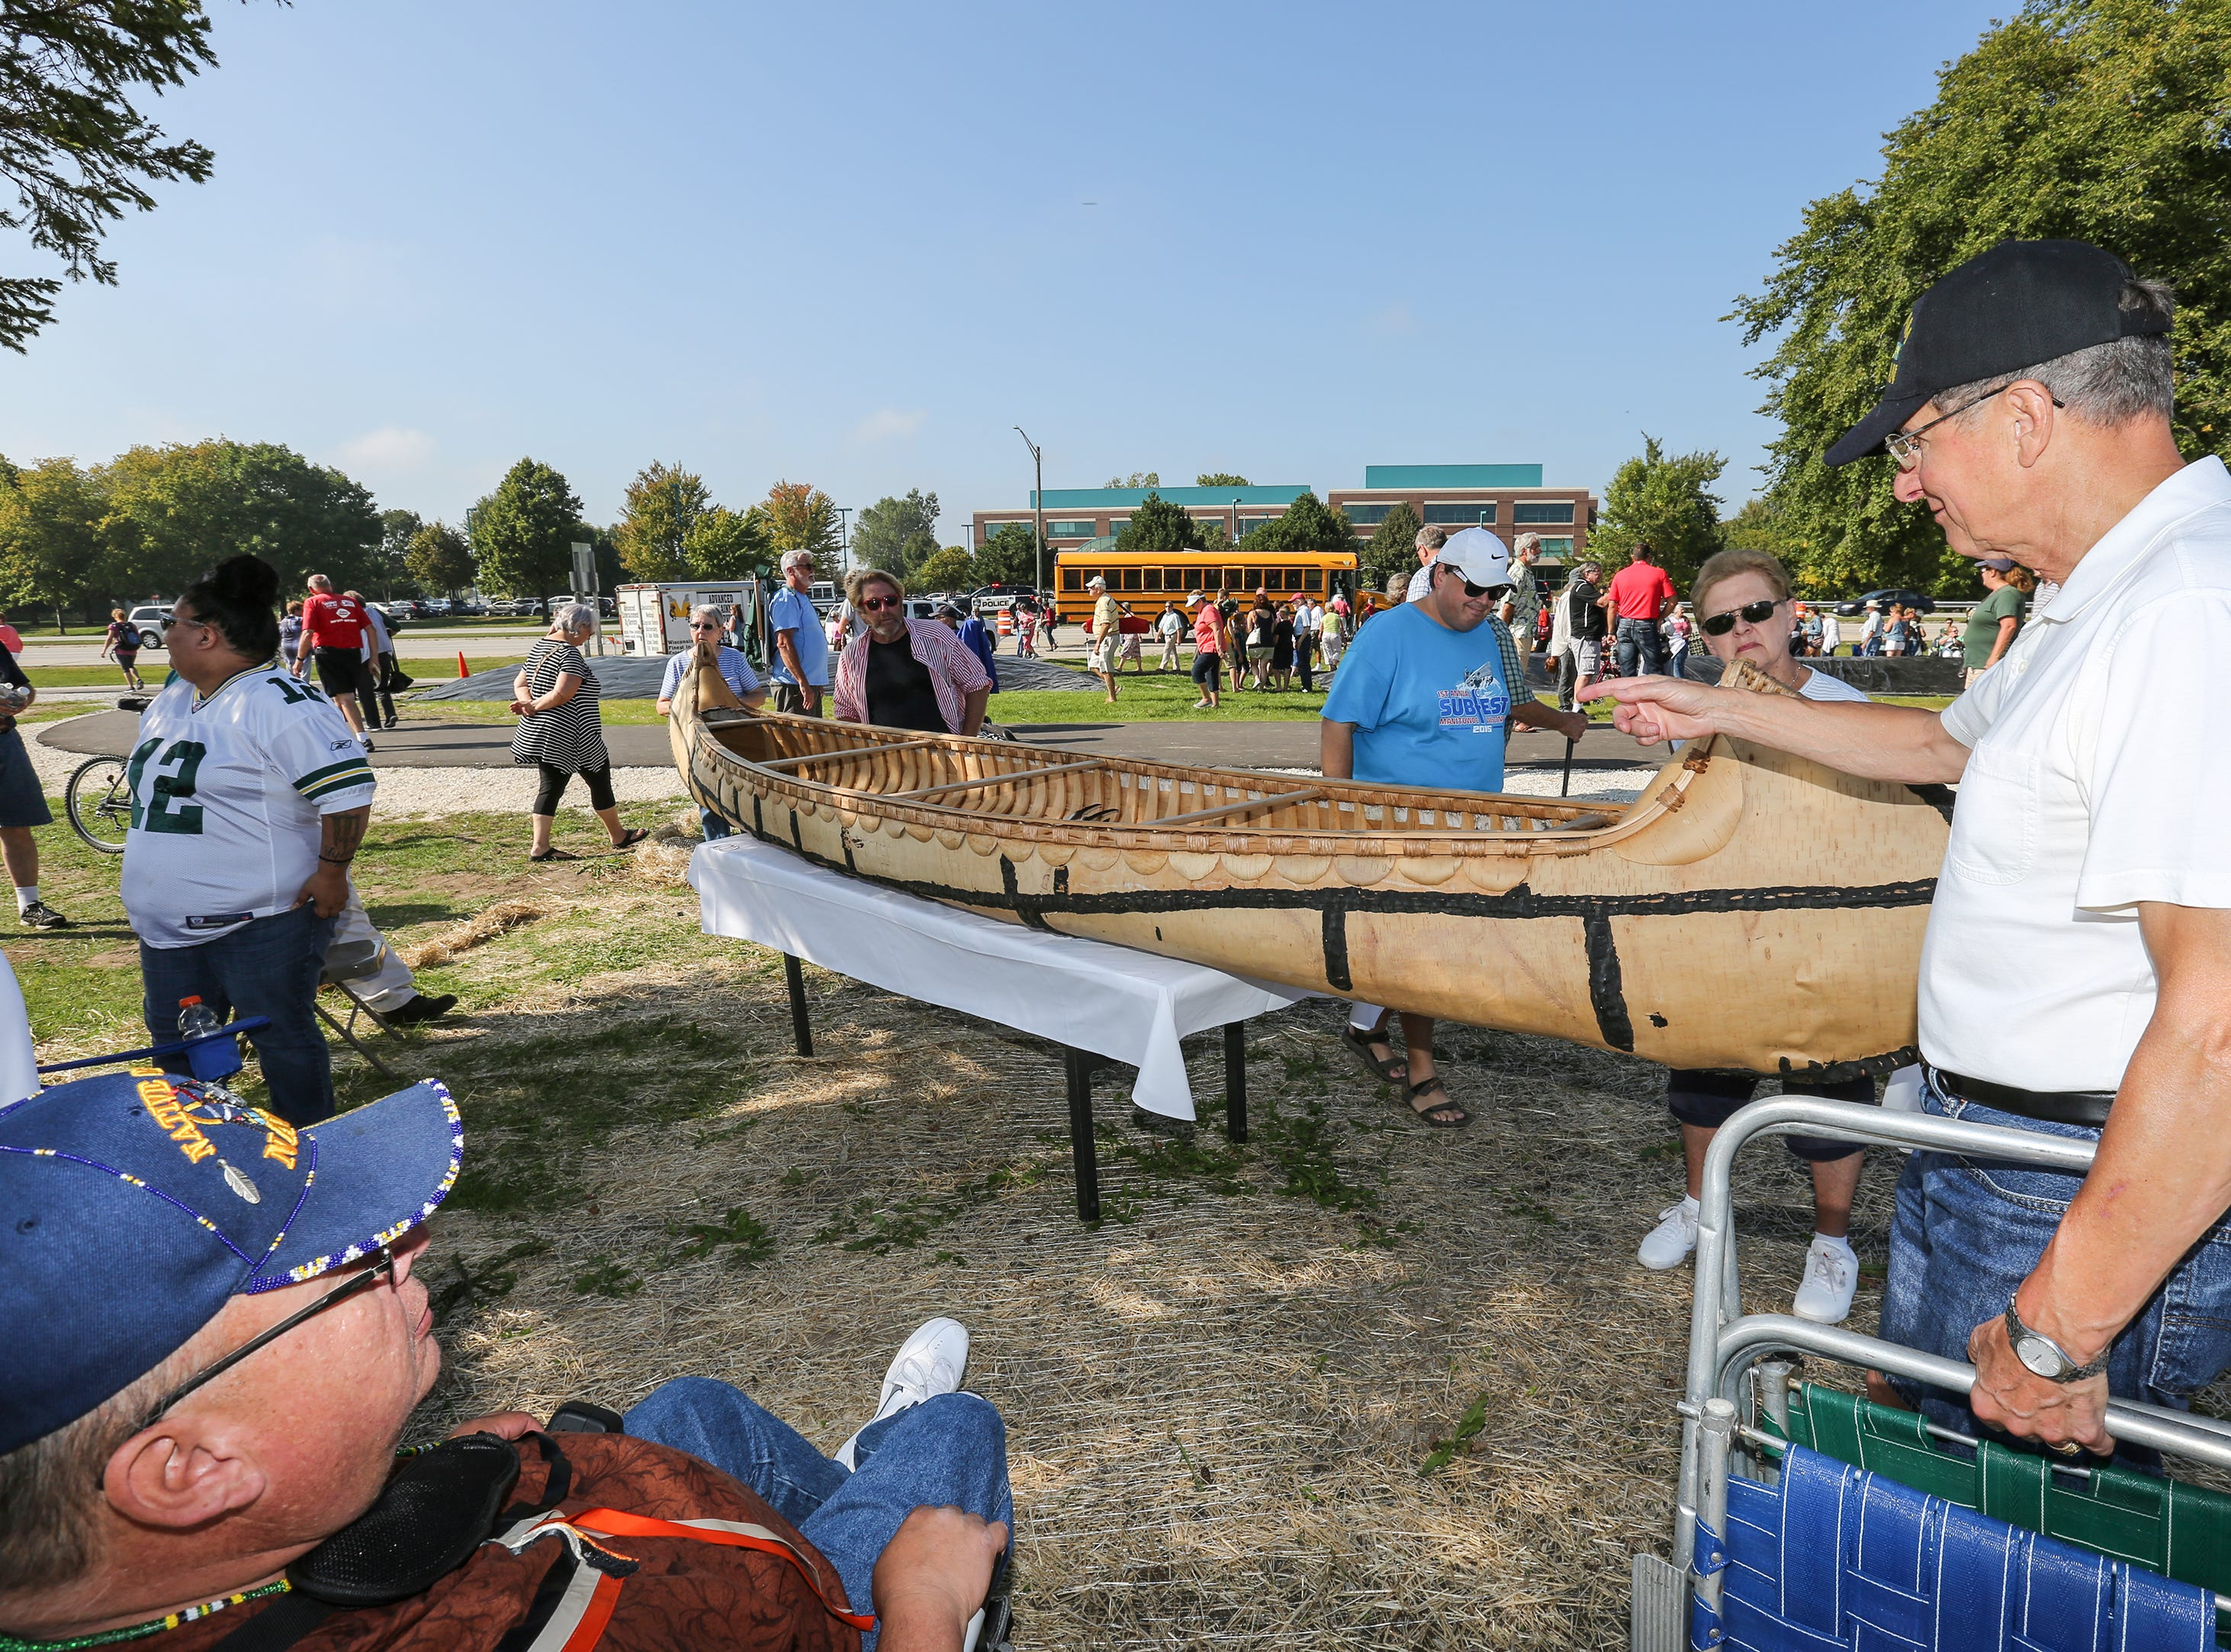 The public checks out a real birch bark canoe during the Spirit of the Rivers monument dedication Sunday, Sept. 16, 2018, in Two Rivers, Wis.